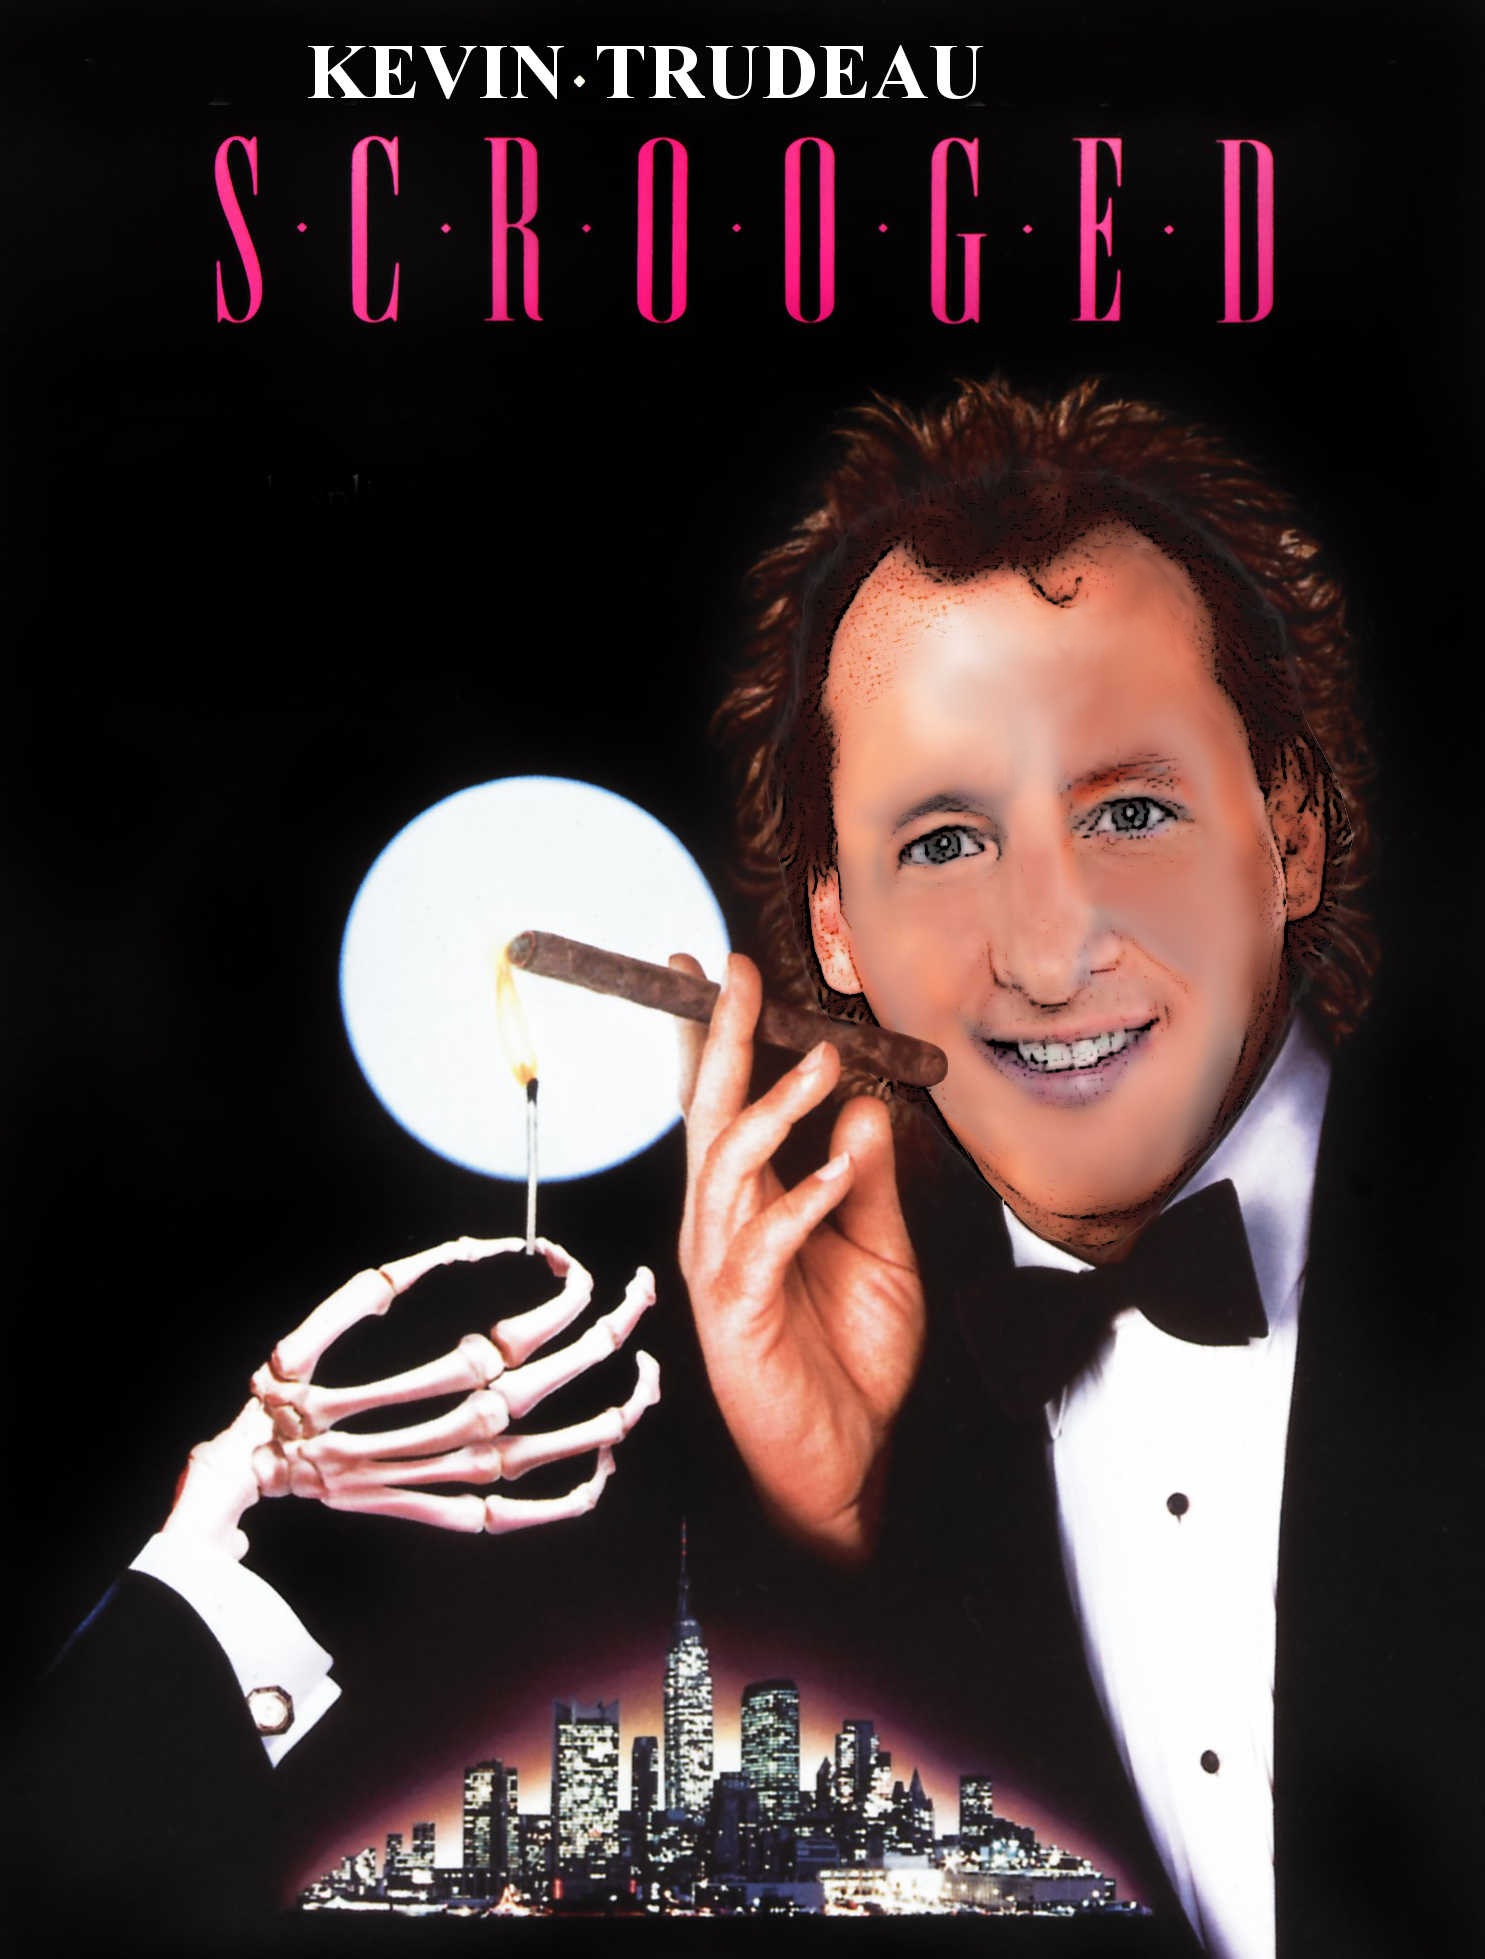 KT Scrooged